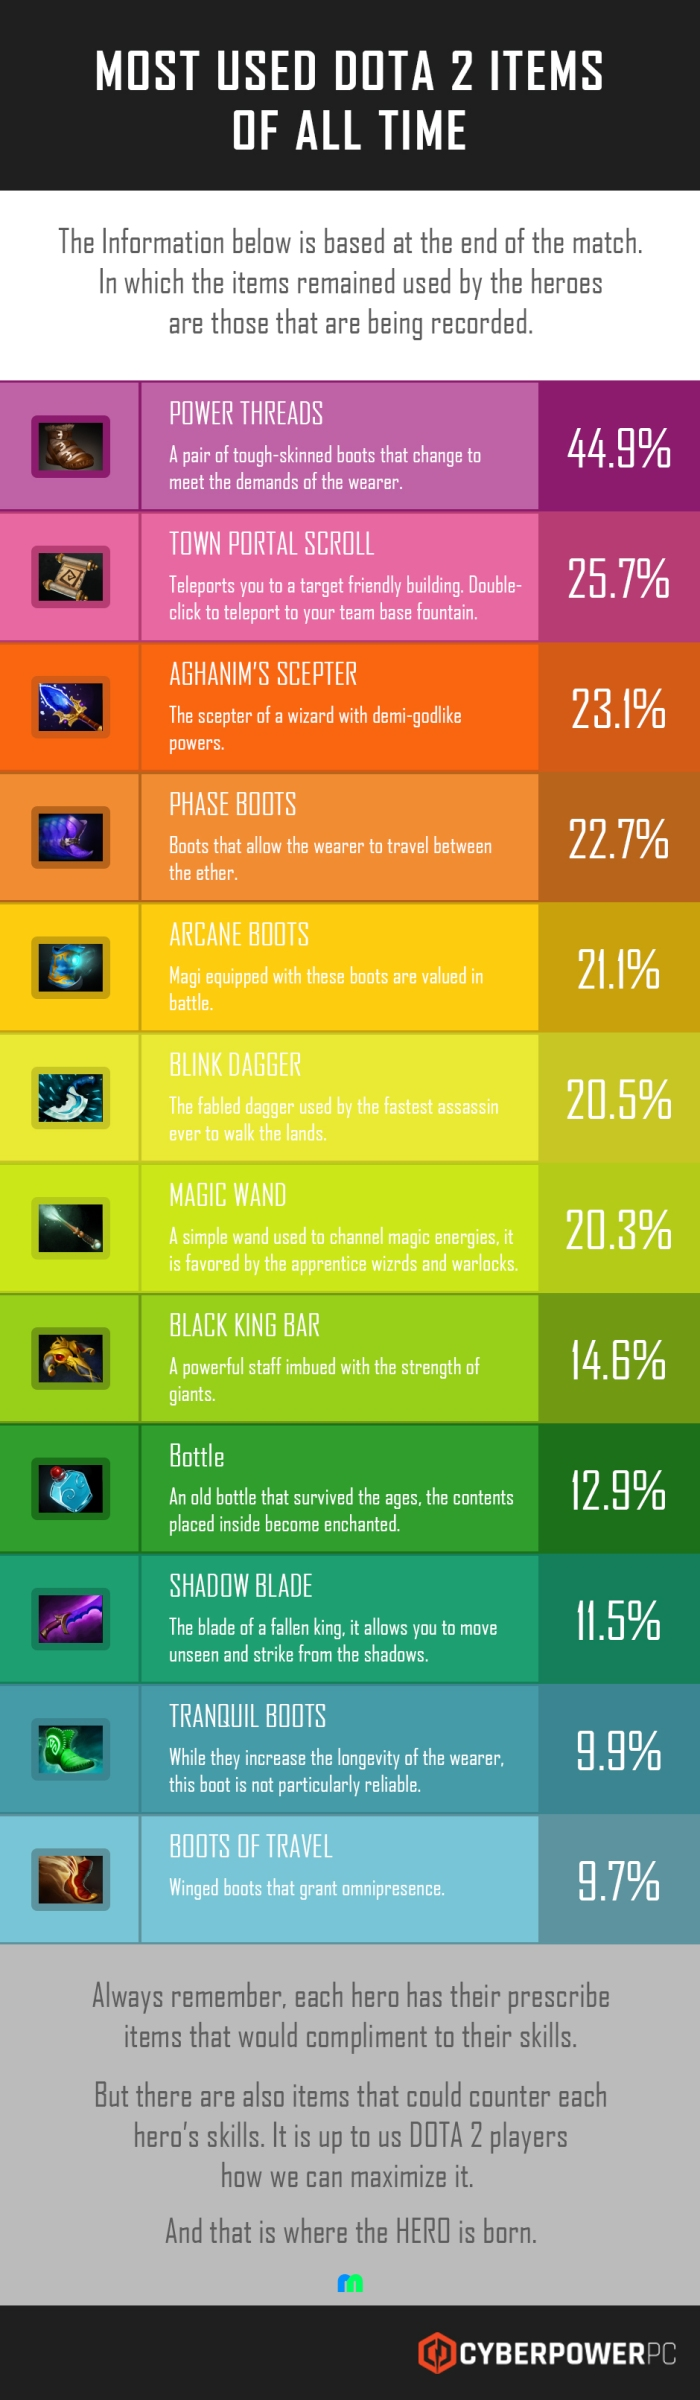 most-used-dota2-items